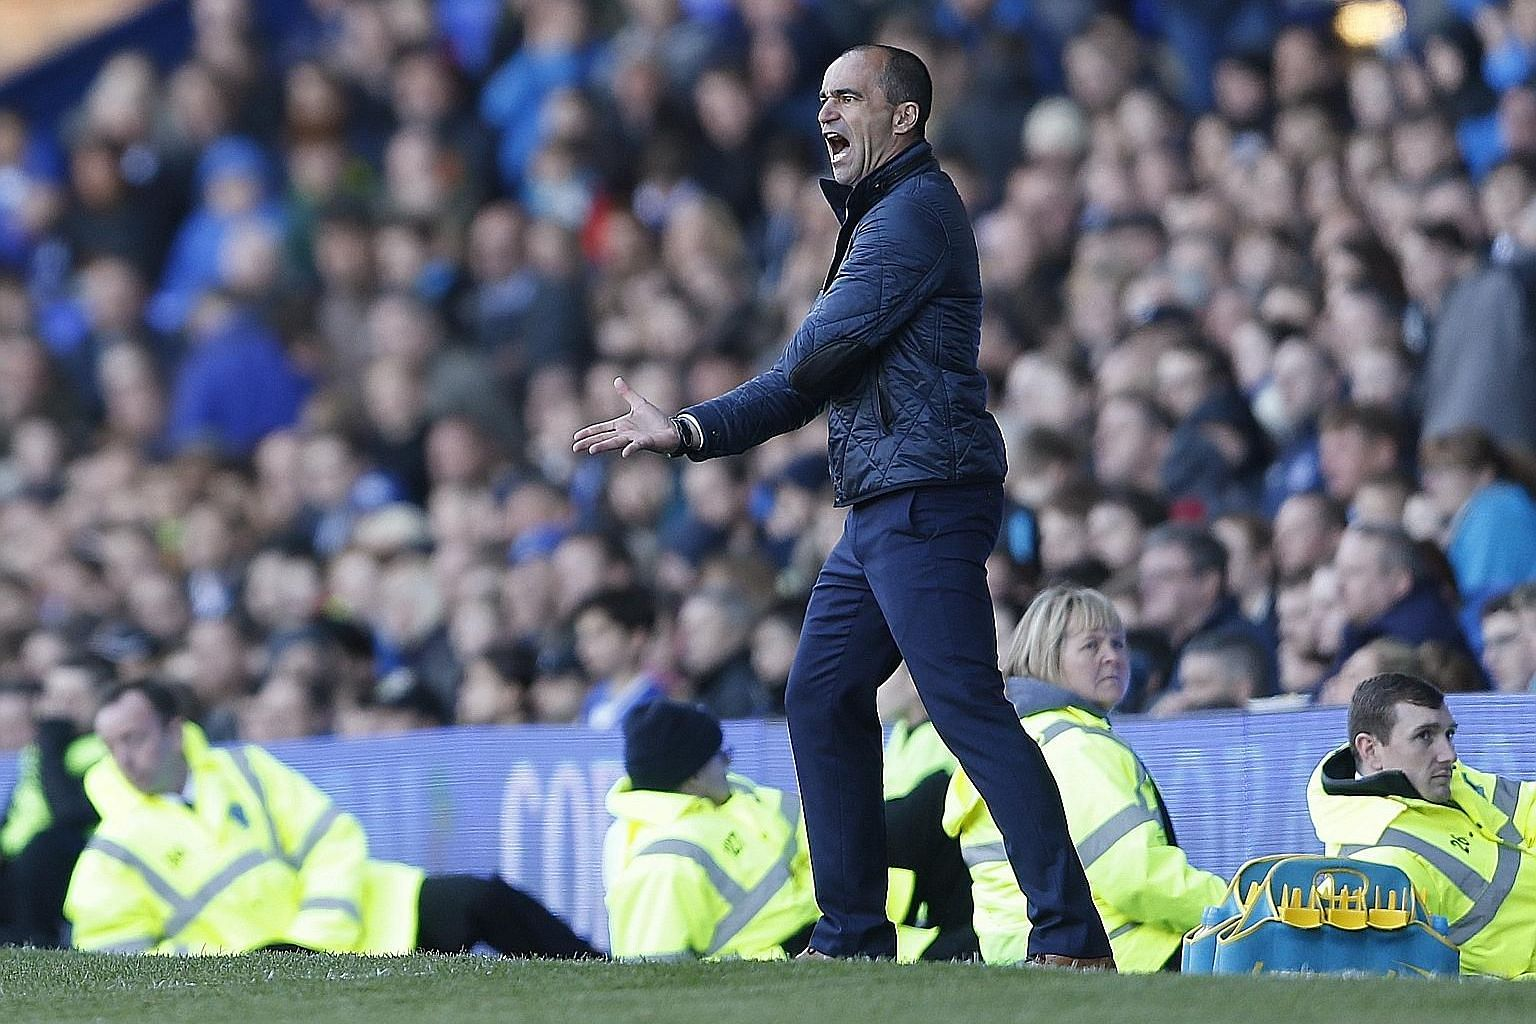 Everton fans are running out of patience with manager Roberto Martinez, who has presided over an inconsistent season in which the Toffees have earned just 17 points out of a possible 51 at home. This is set to be the worst return in the club's histor